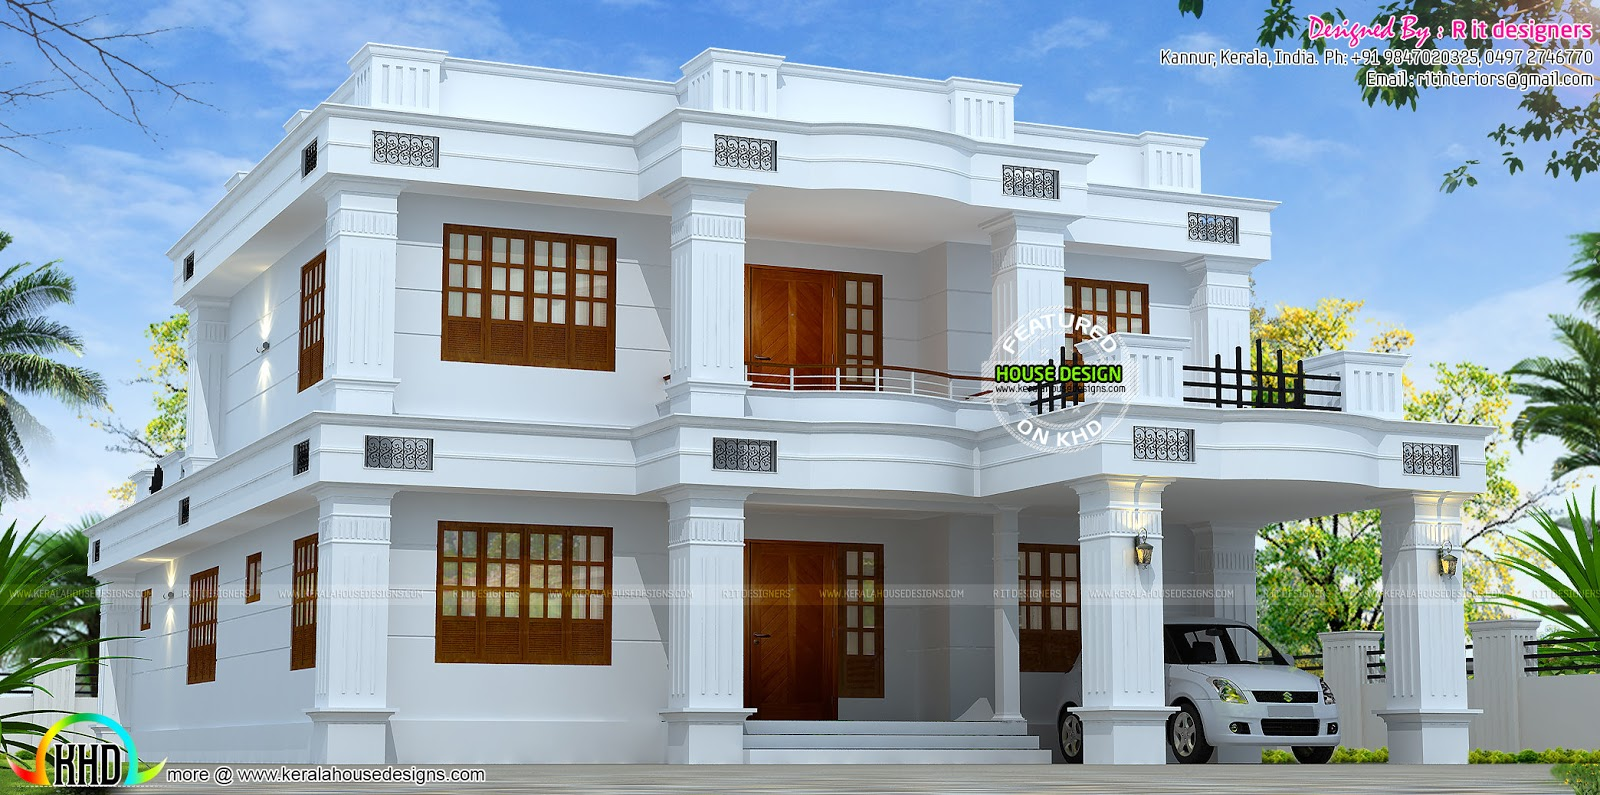 February 2016 kerala home design and floor plans Planning a house